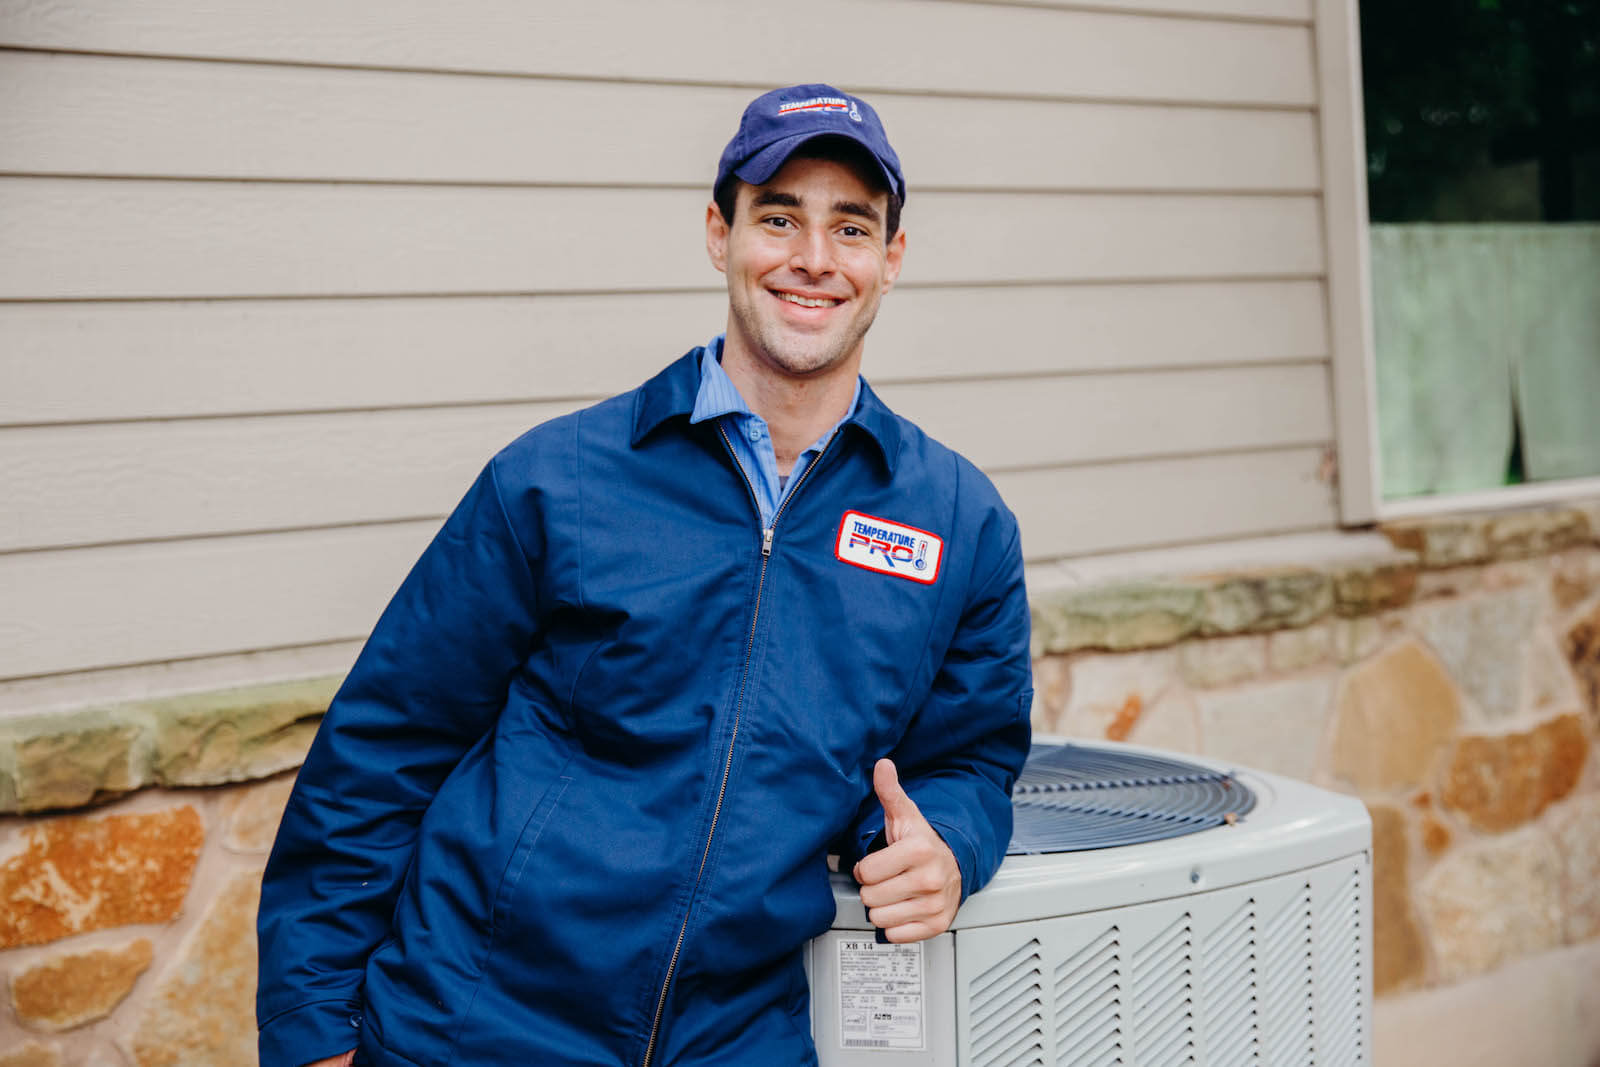 Happy HVAC handyman working outdoors